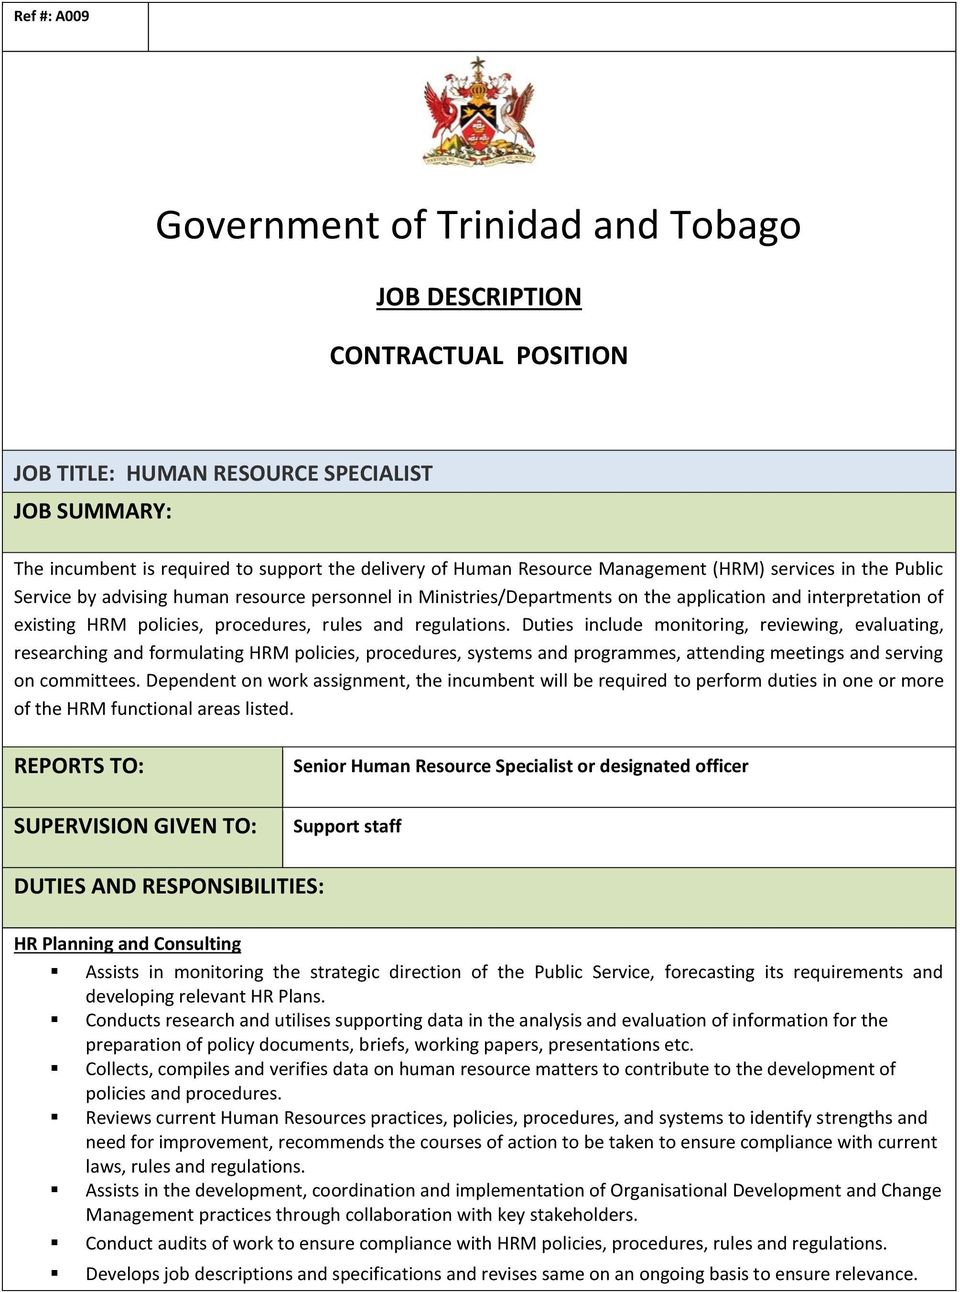 Government of Trinidad and Tobago - PDF Free Download